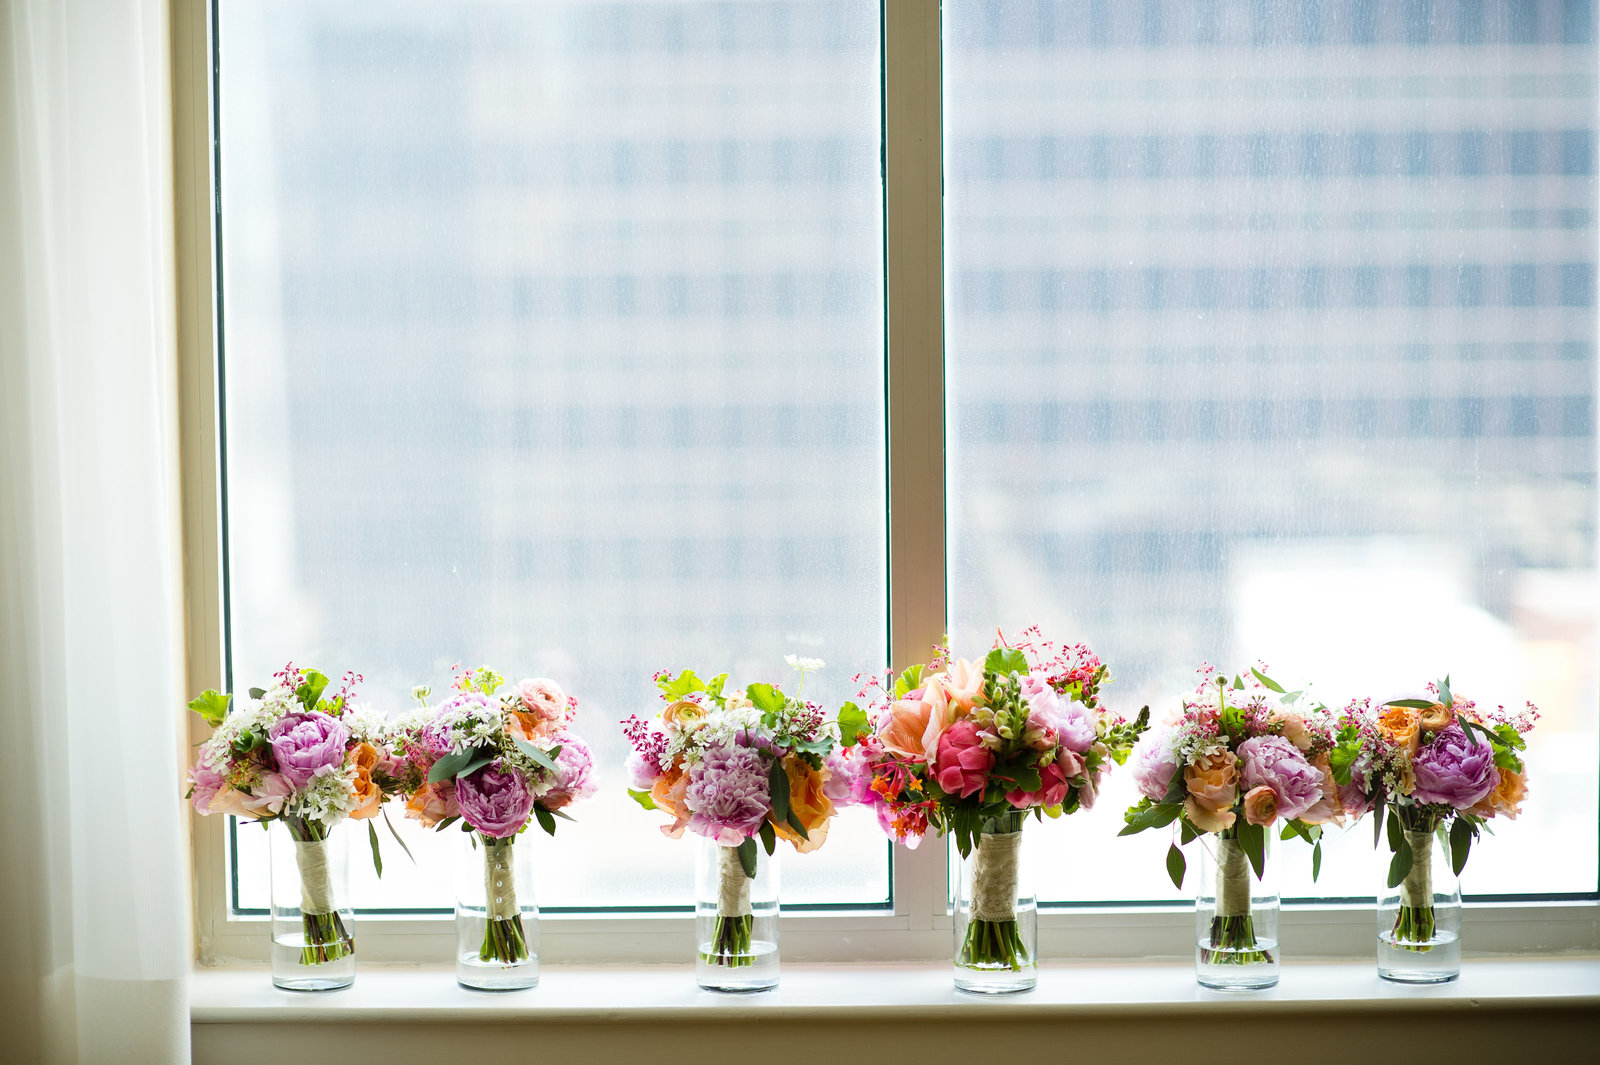 Bridal bouquet by A Garden Party Florist photo by Amanda Young Photography